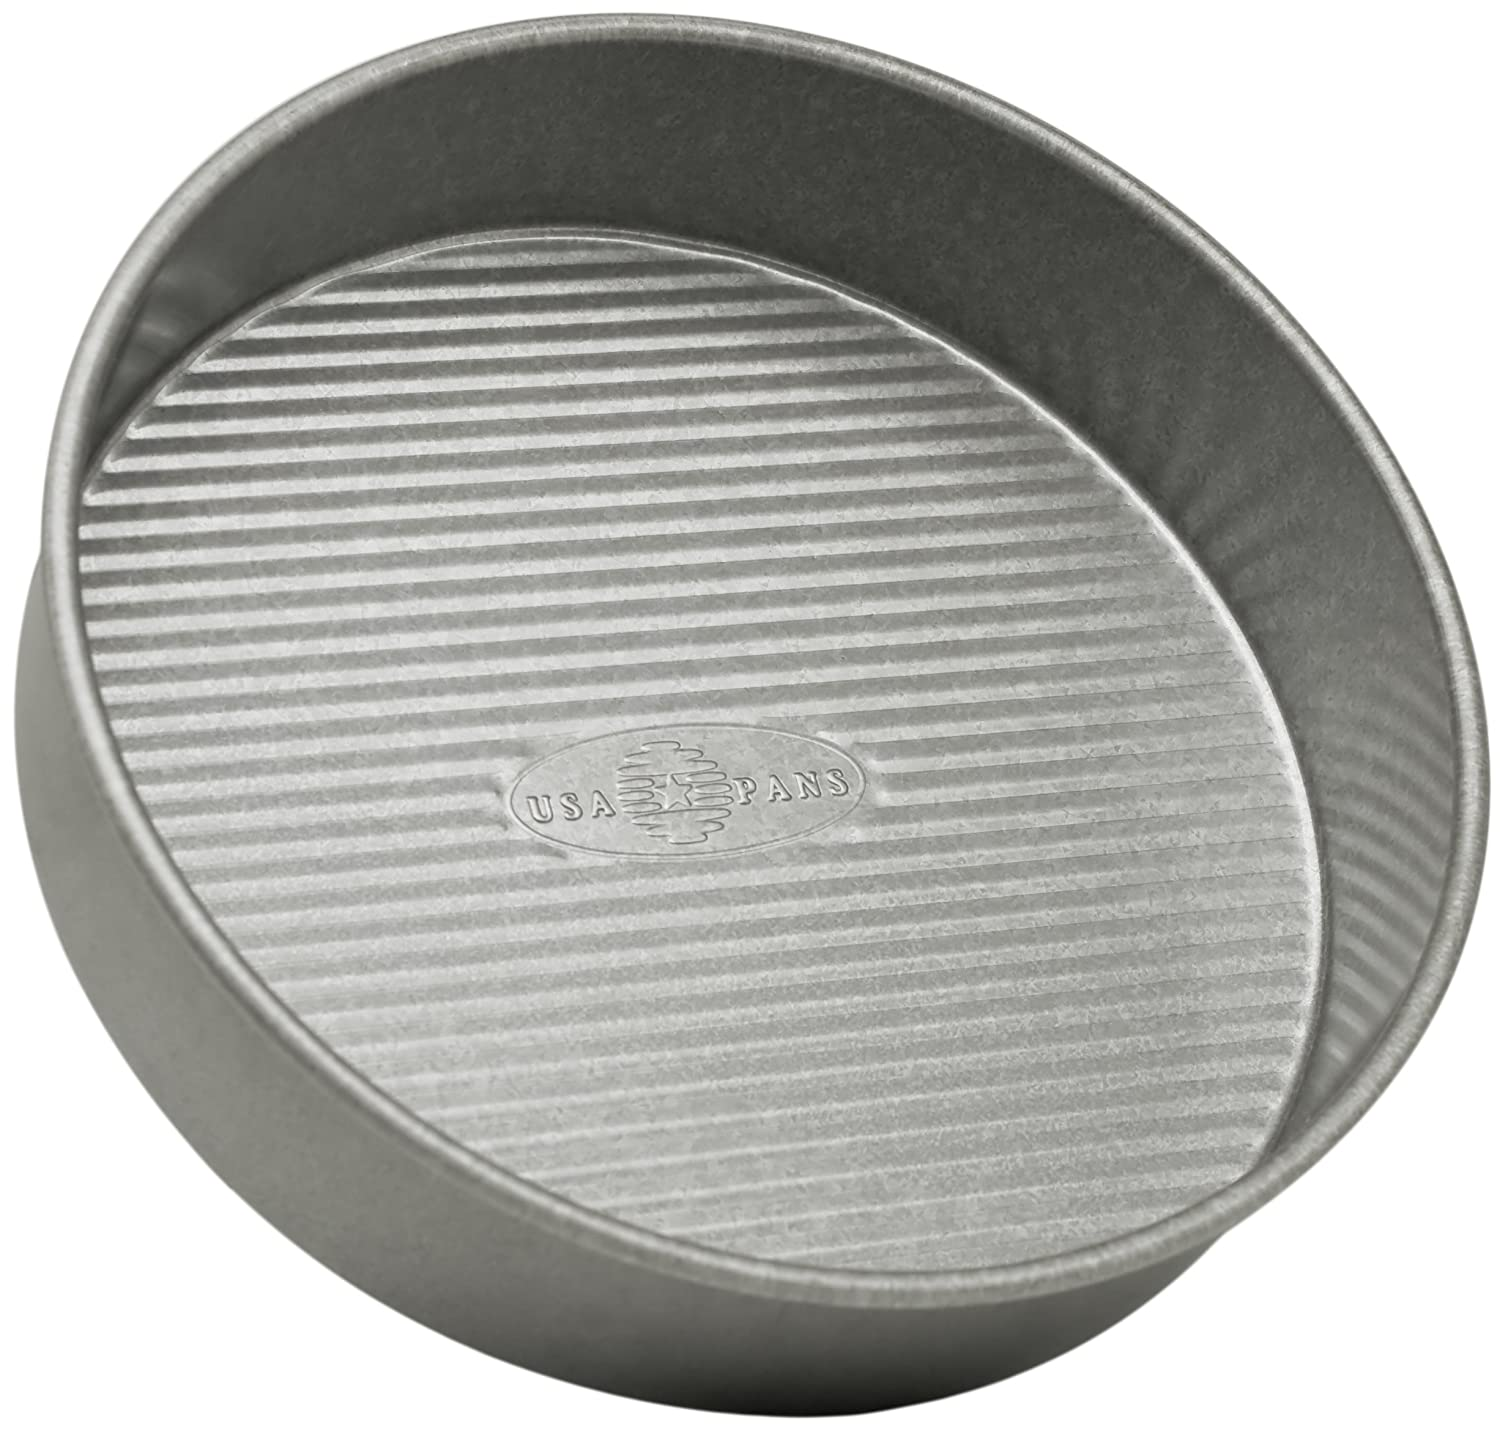 USA Pan Bakeware 1070LCRound Cake Pan, 9 inch, Nonstick & Quick Release Coating, 9-Inch